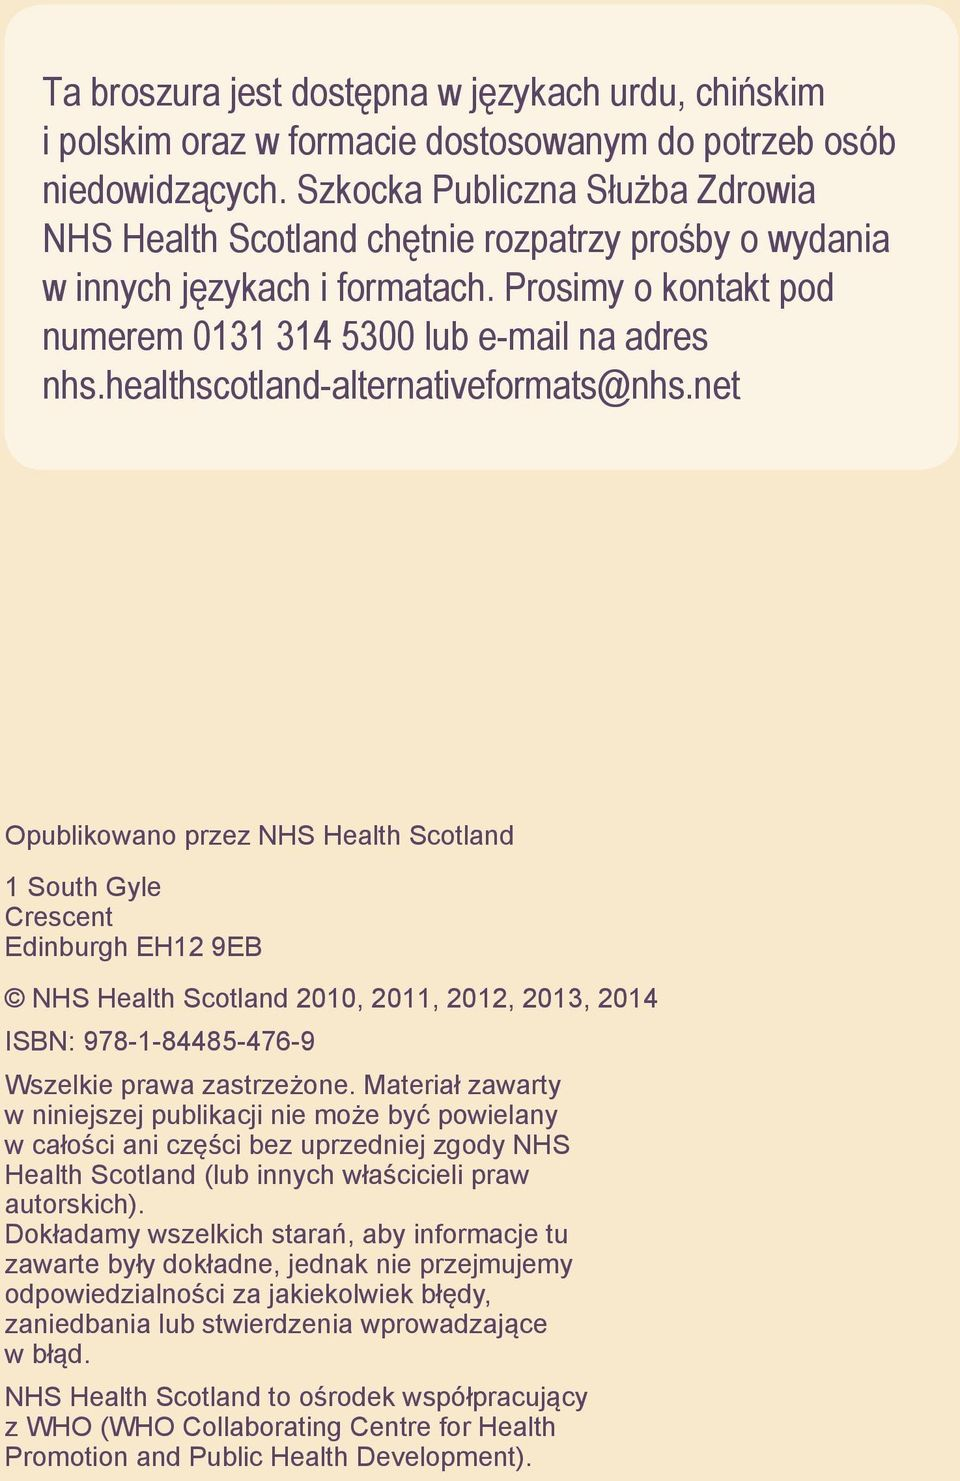 healthscotland-alternativeformats@nhs.